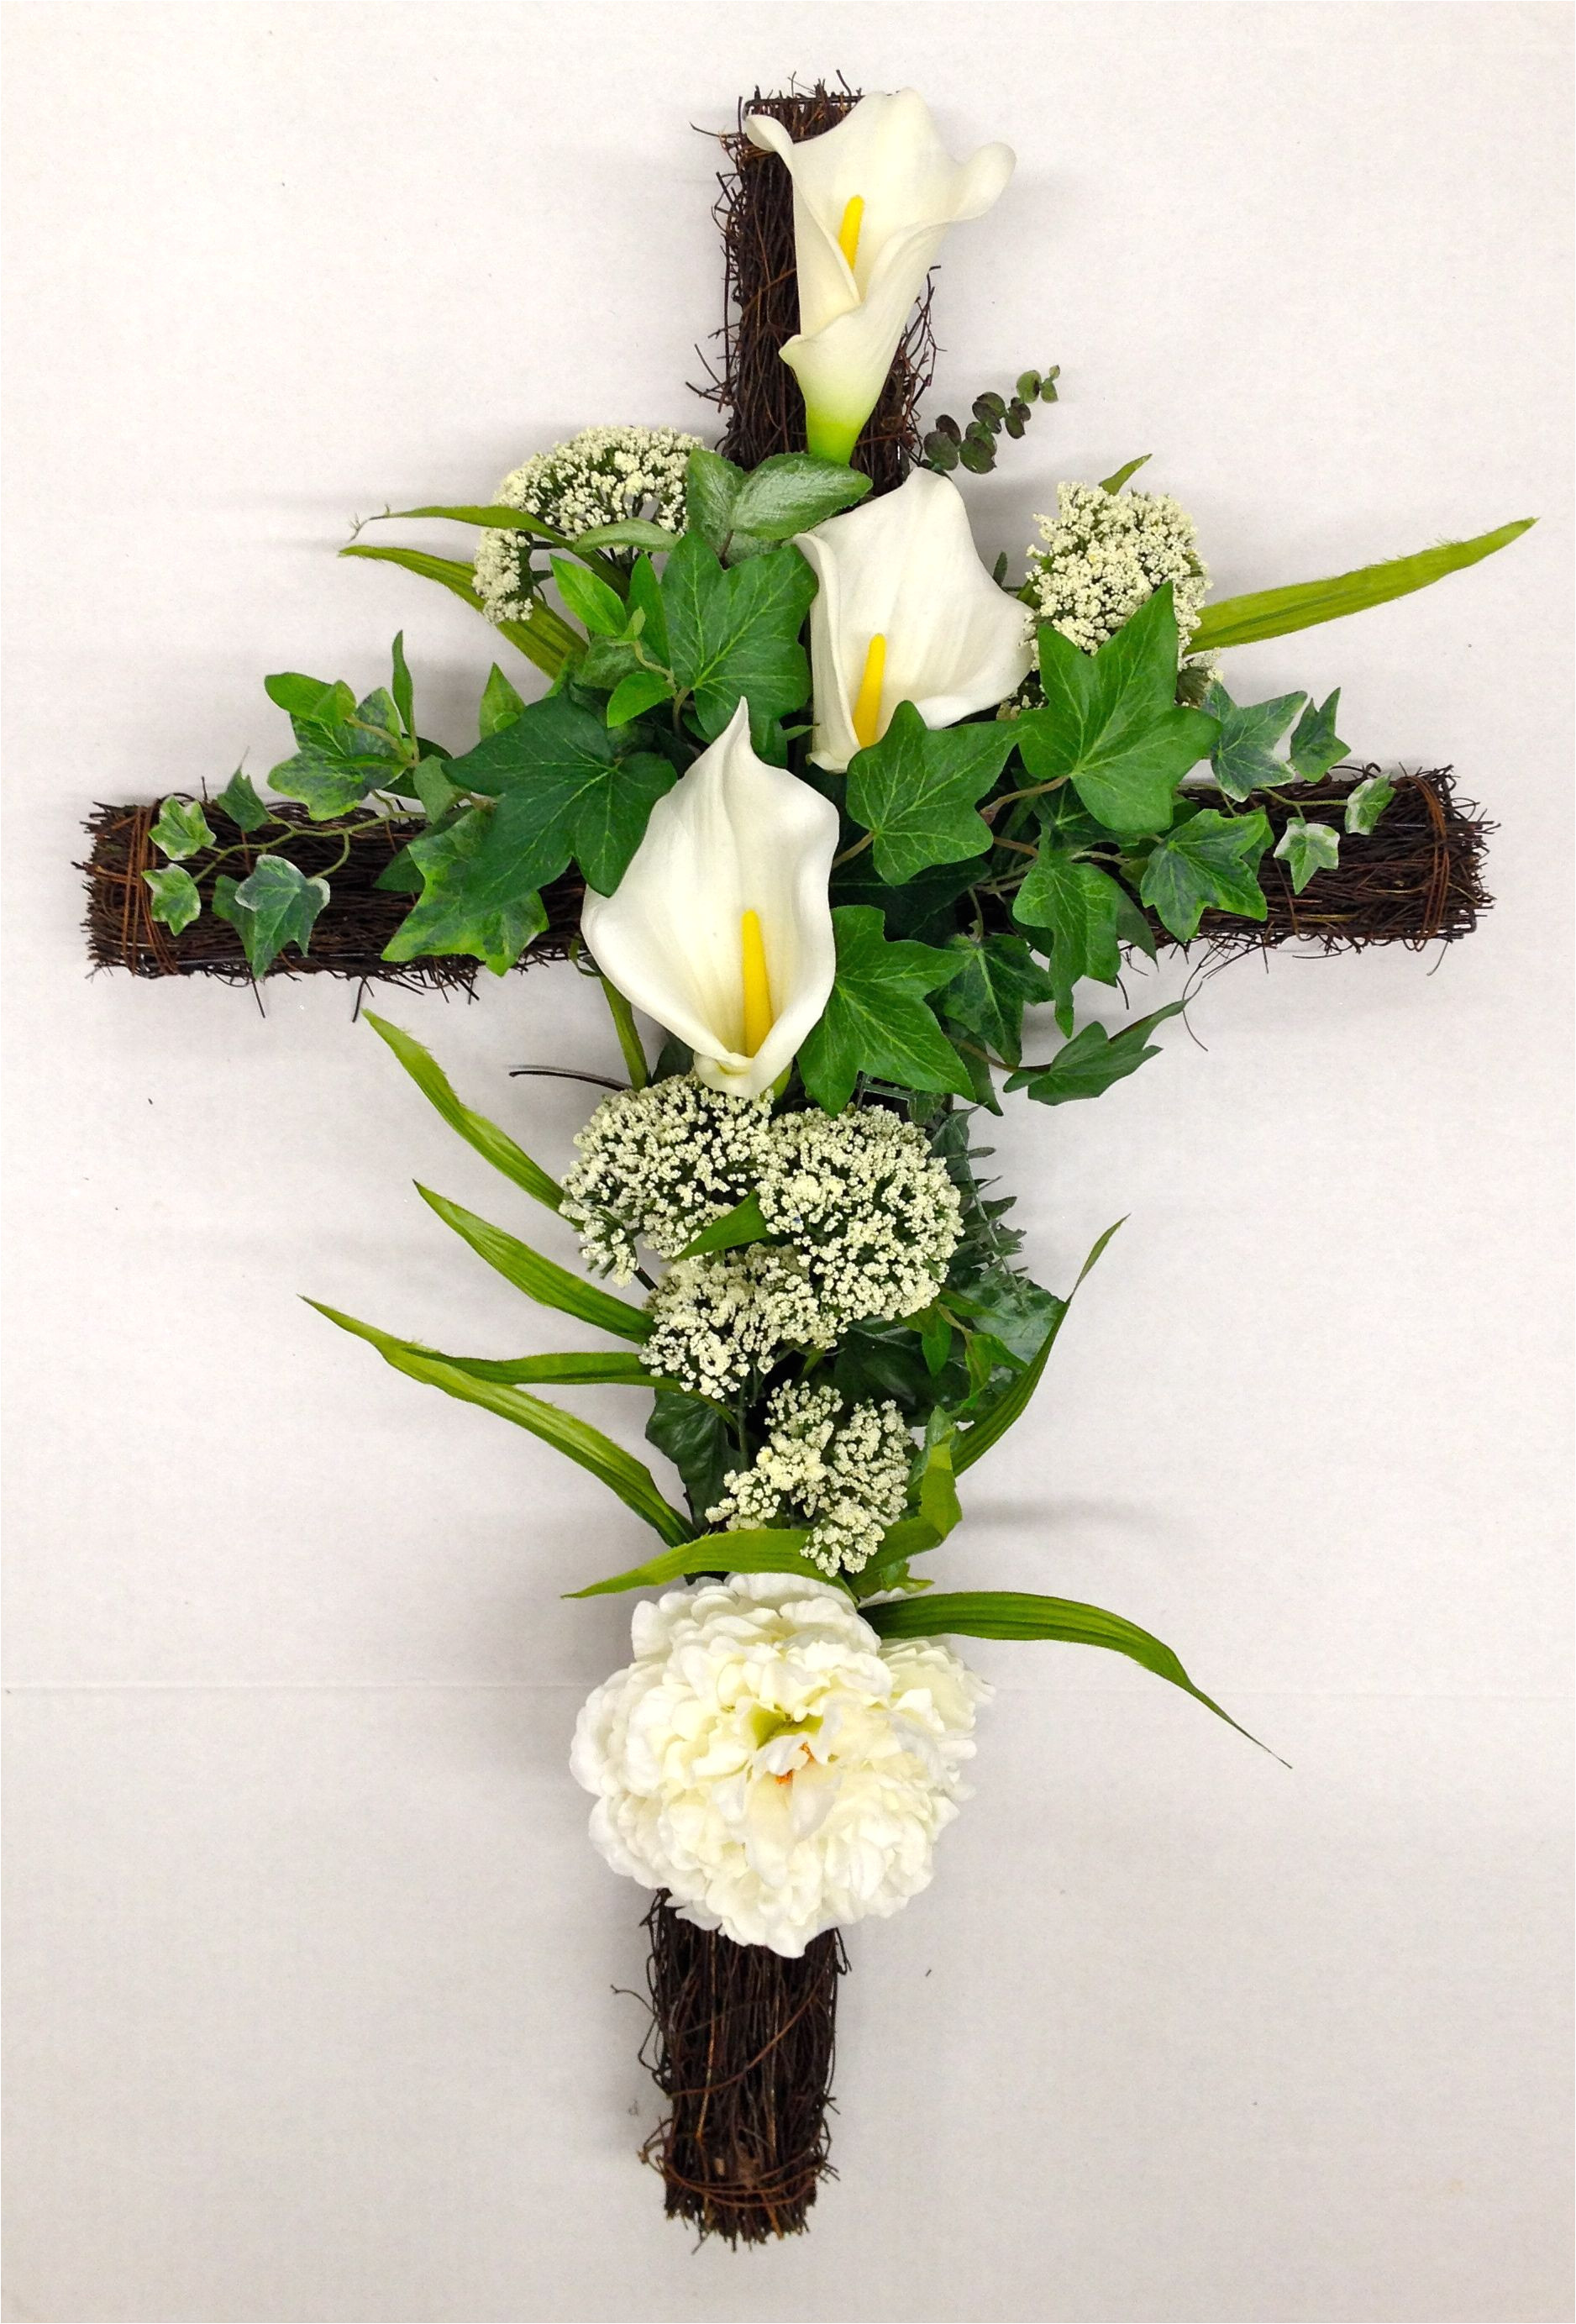 season memorial grape vine cross with white calla lilies and wild powdery white flowering plumes